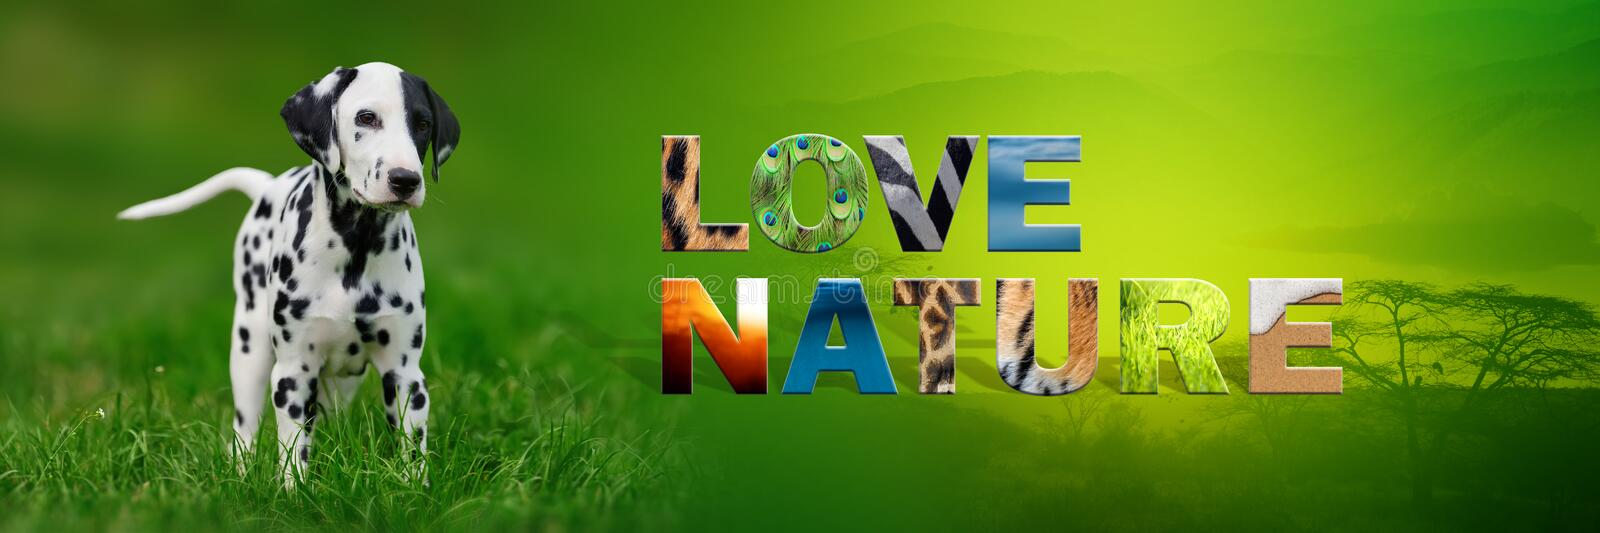 Dog with text Love Nature royalty free stock images